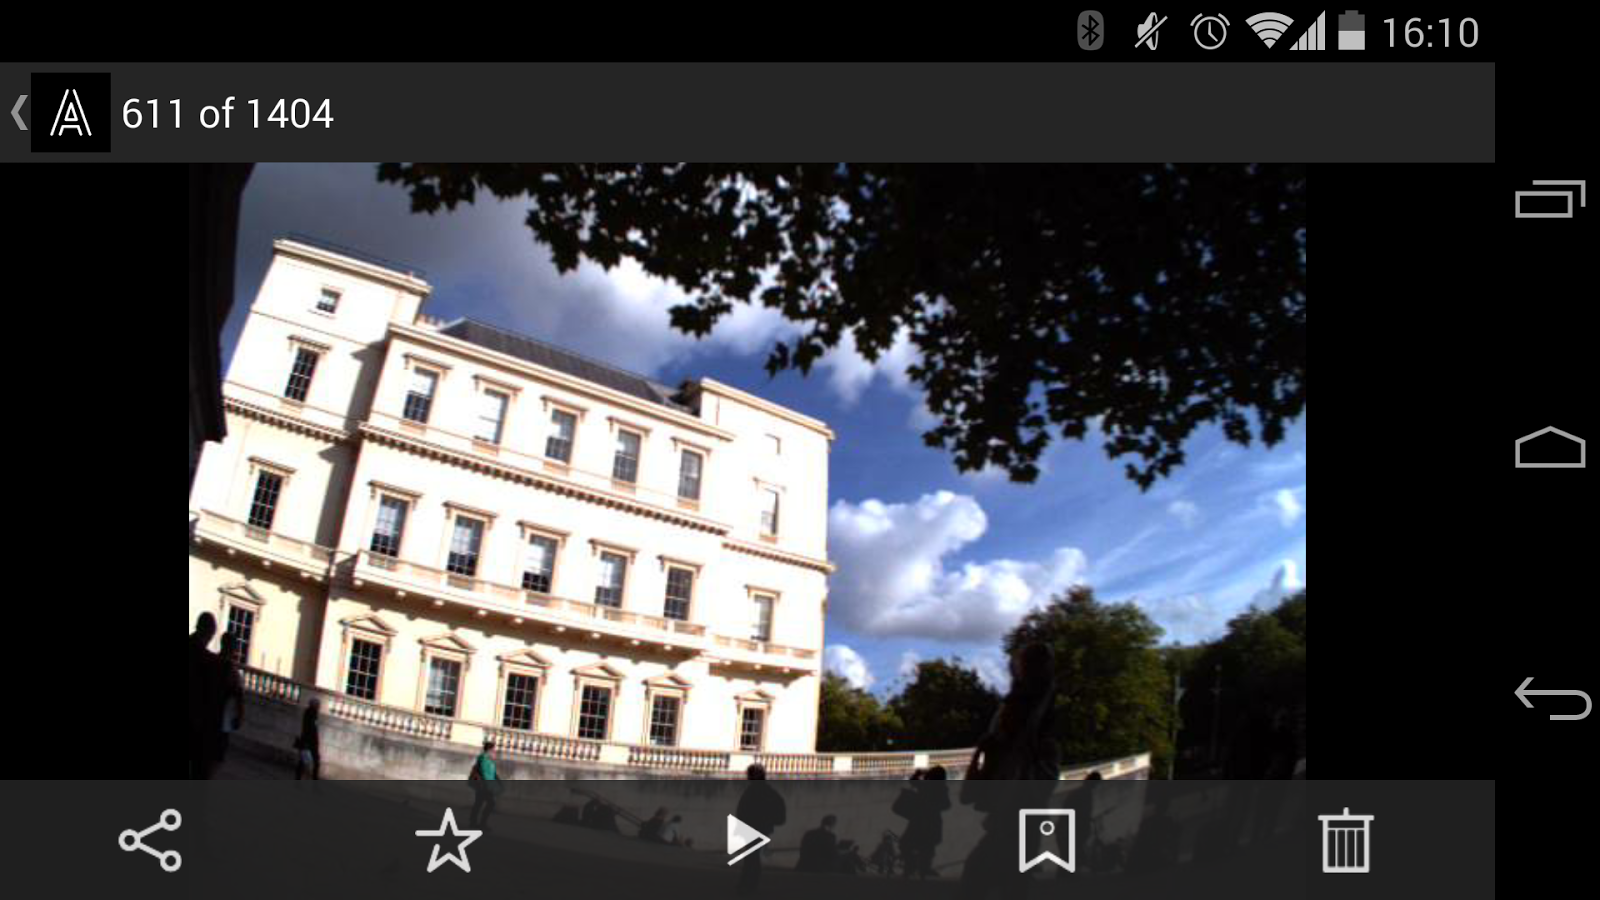 Autographer wearable camera - screenshot